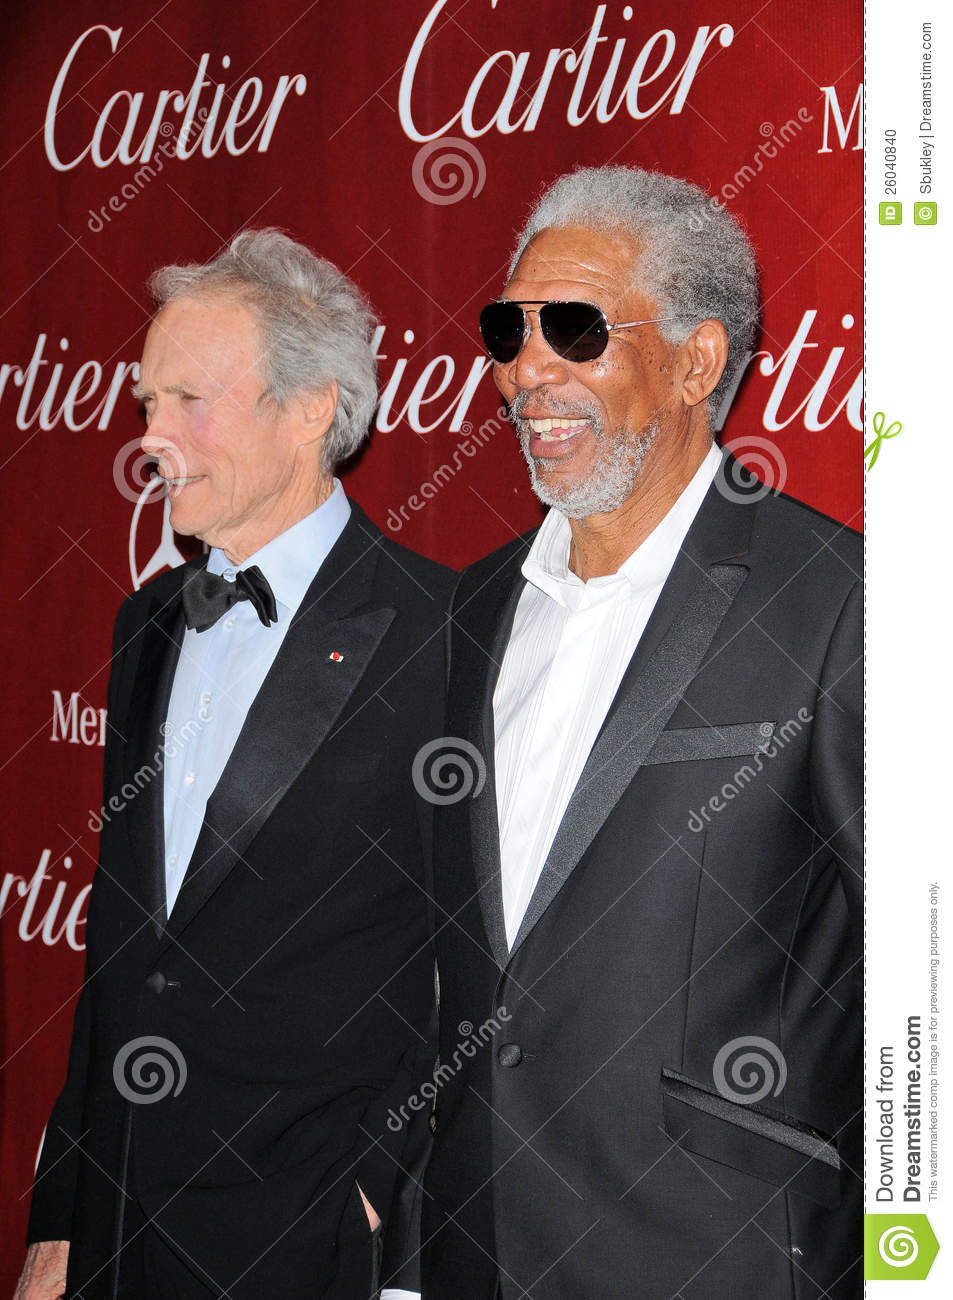 Clint eastwood and morgan freeman at the 2010 palm springs